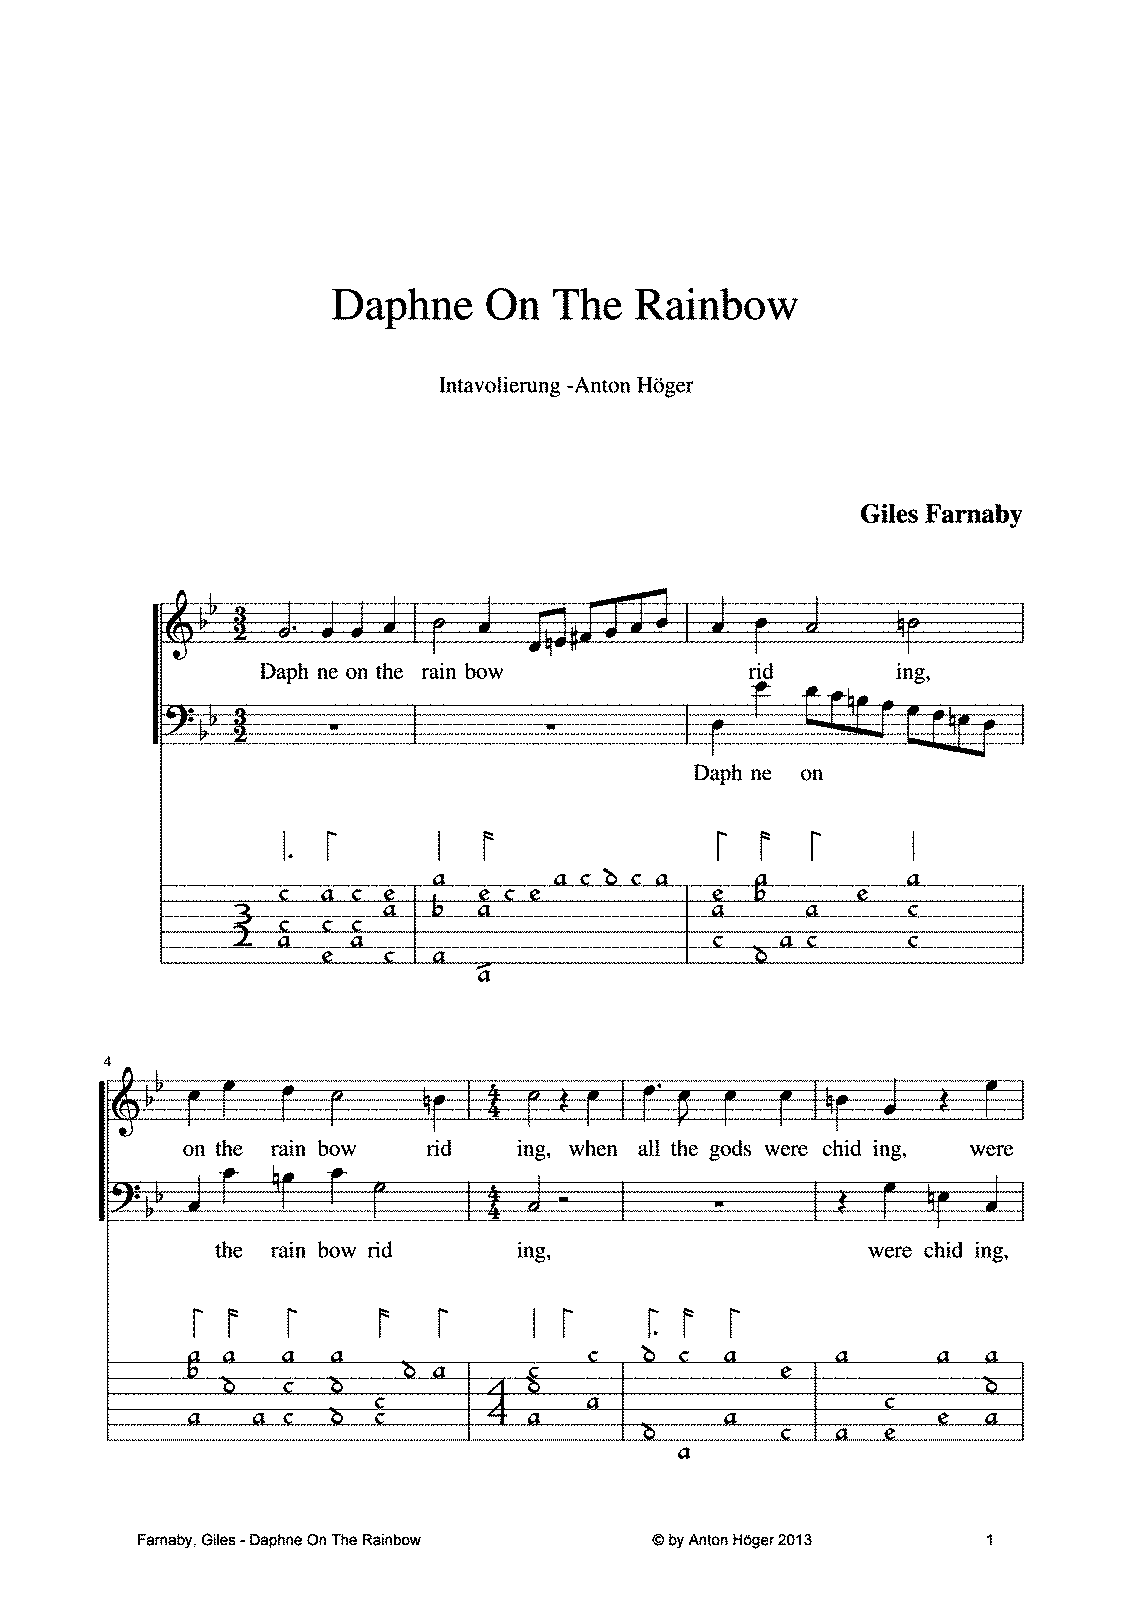 PMLP485441-Farnaby, Giles - Daphne On The Rainbow.pdf